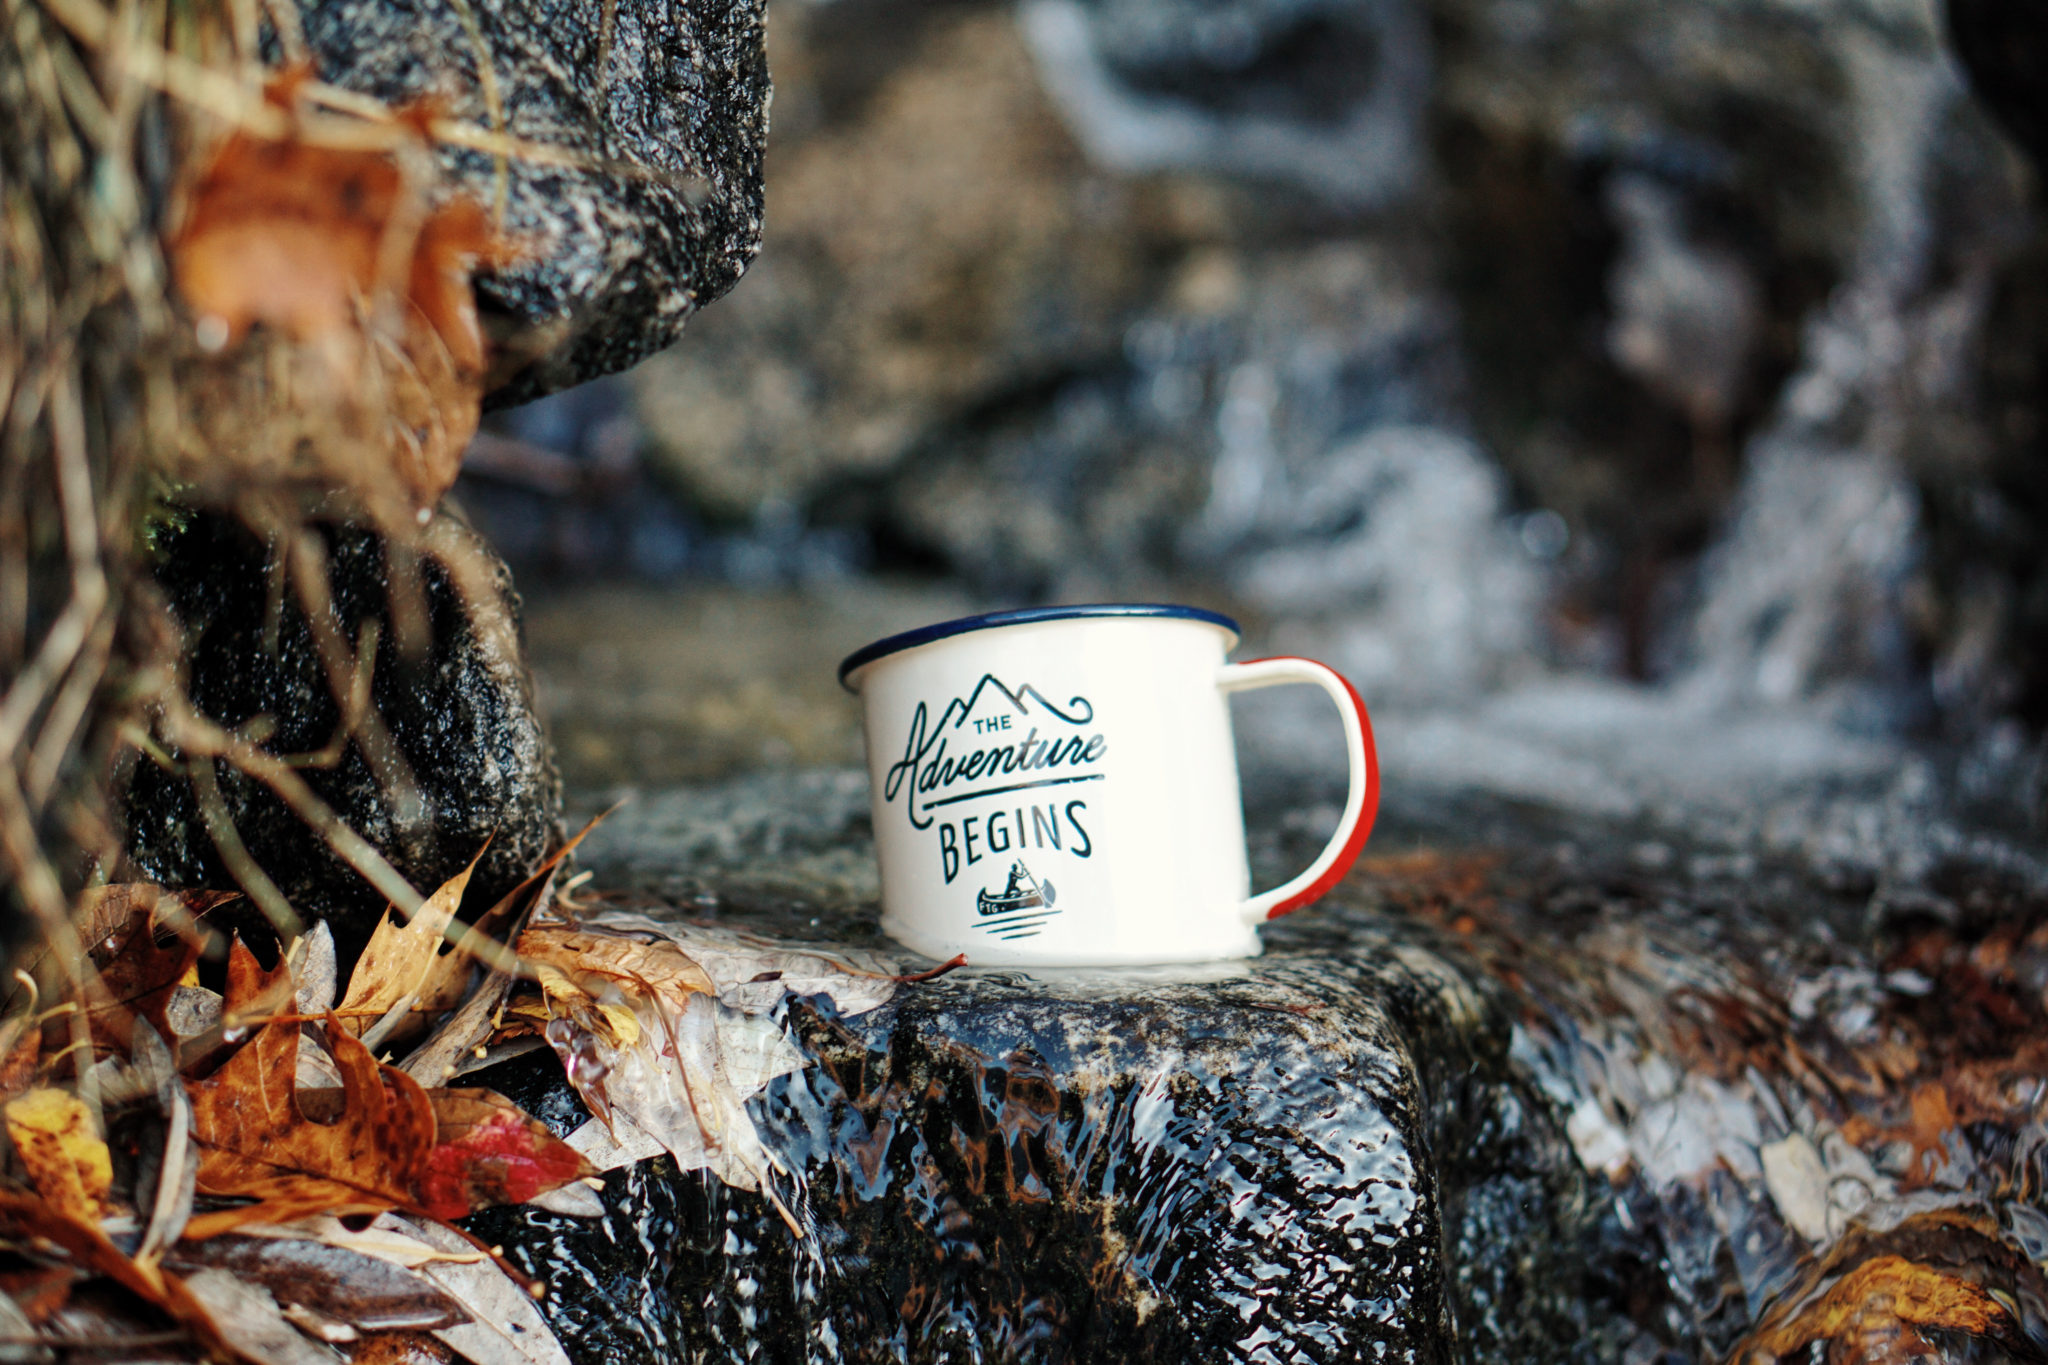 An enamel mug reading 'The adventure begins' sits in a stream. The Team Charter sets ground rules for the upcoming project.